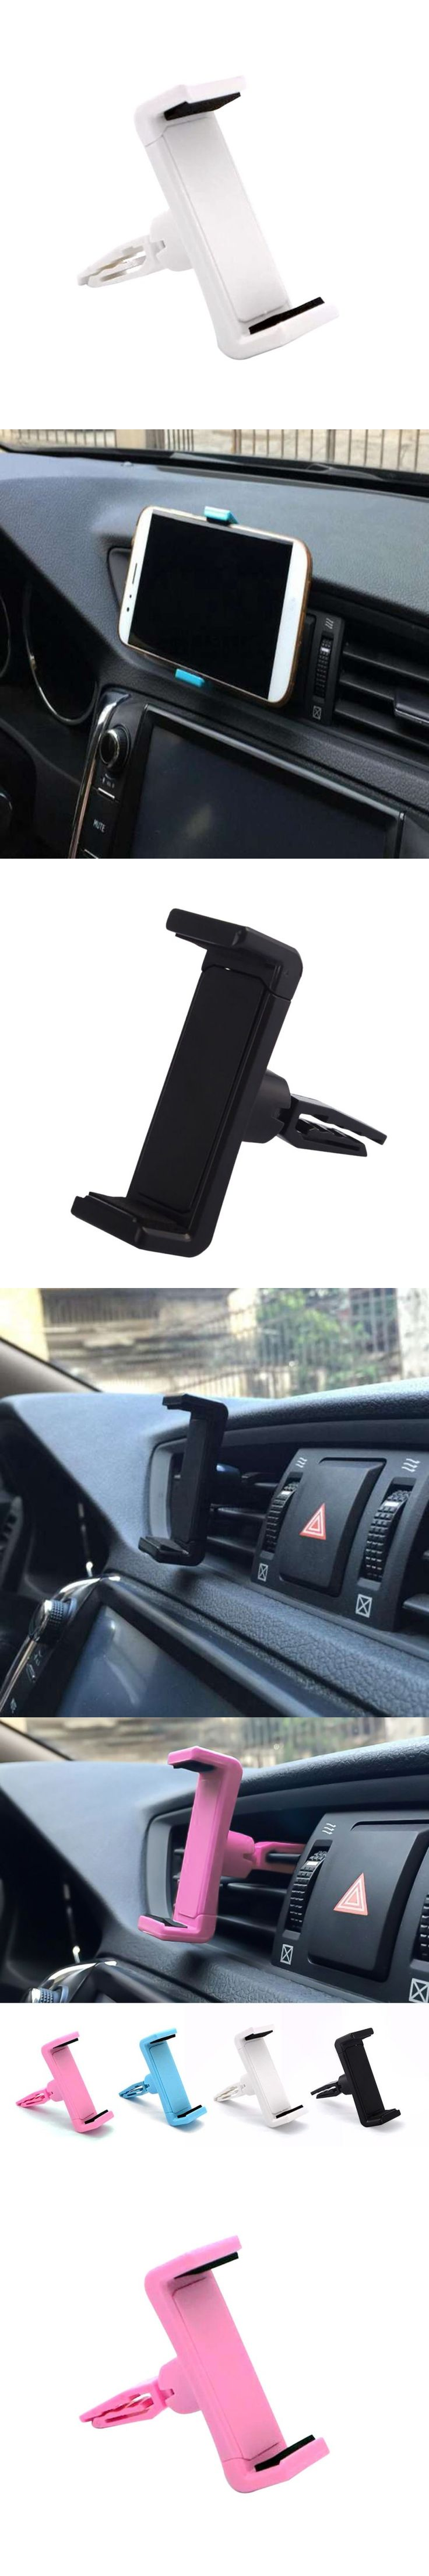 Universal Car Phone Holder 360 Rotate Car Holder For iPhone7 For Samsung Air Vent Mount Stand Phone Car Accessories